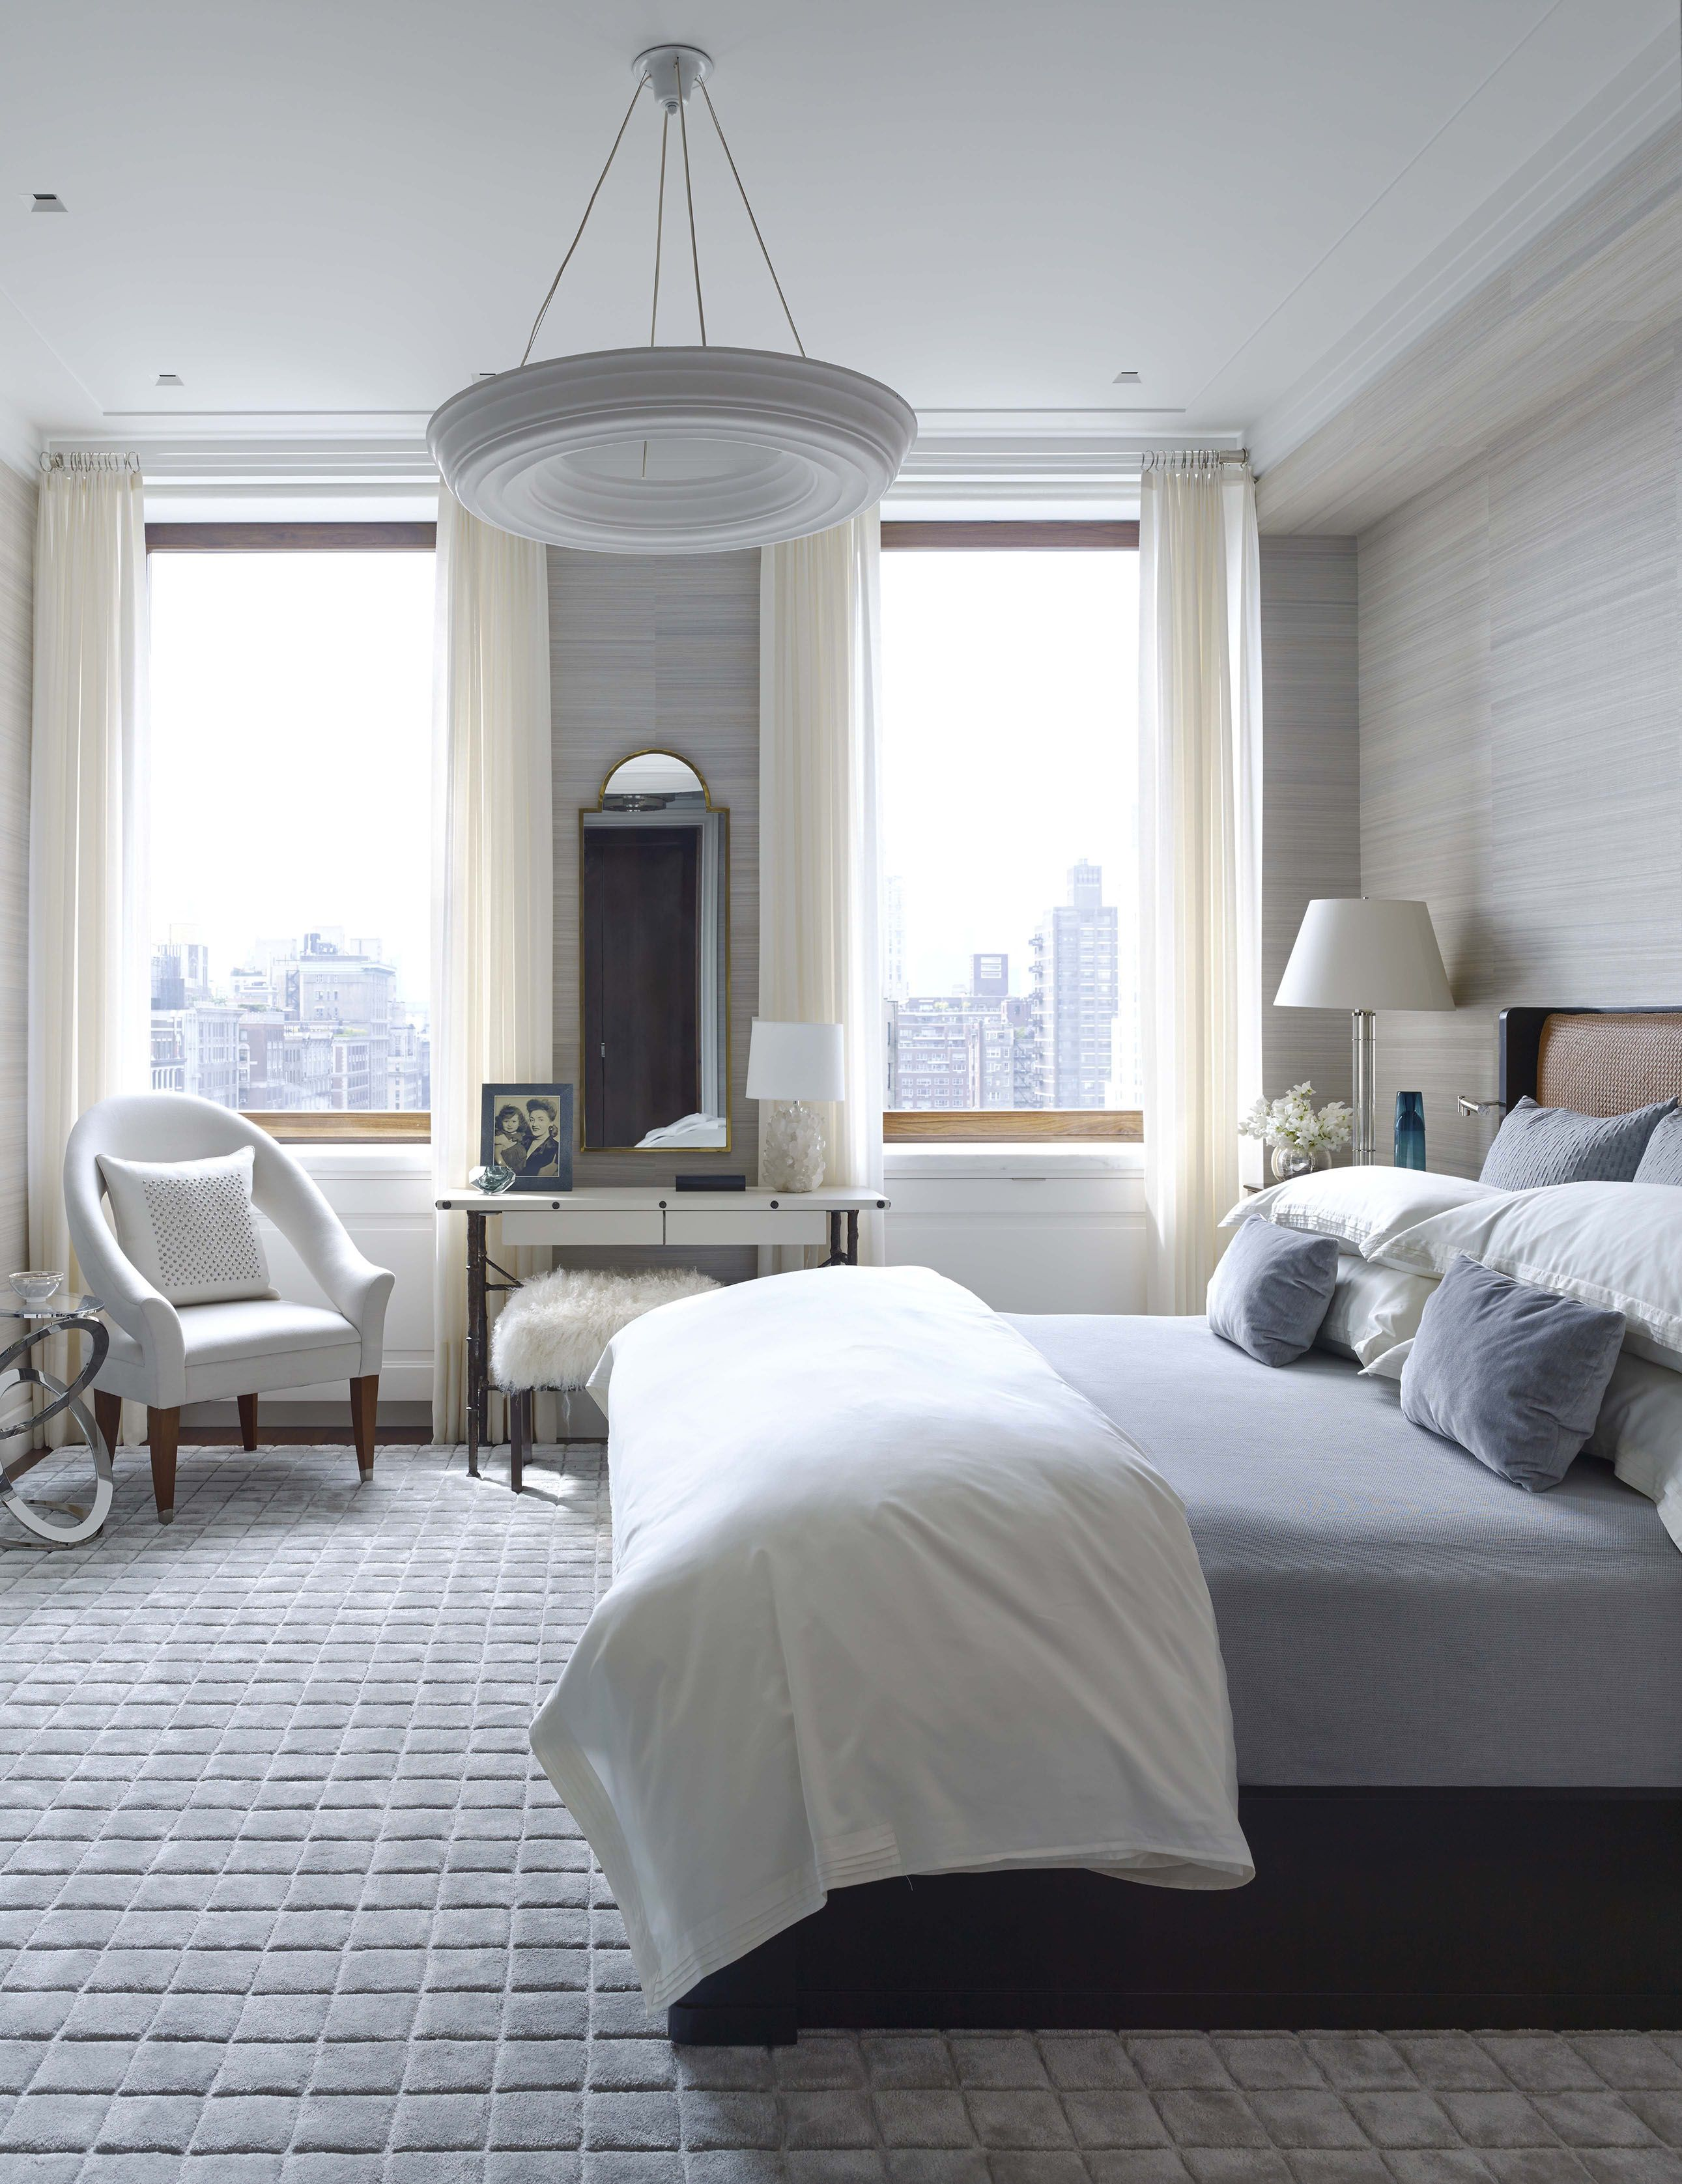 Master bedroom gray  Shades of gray in different textures define the transitional style